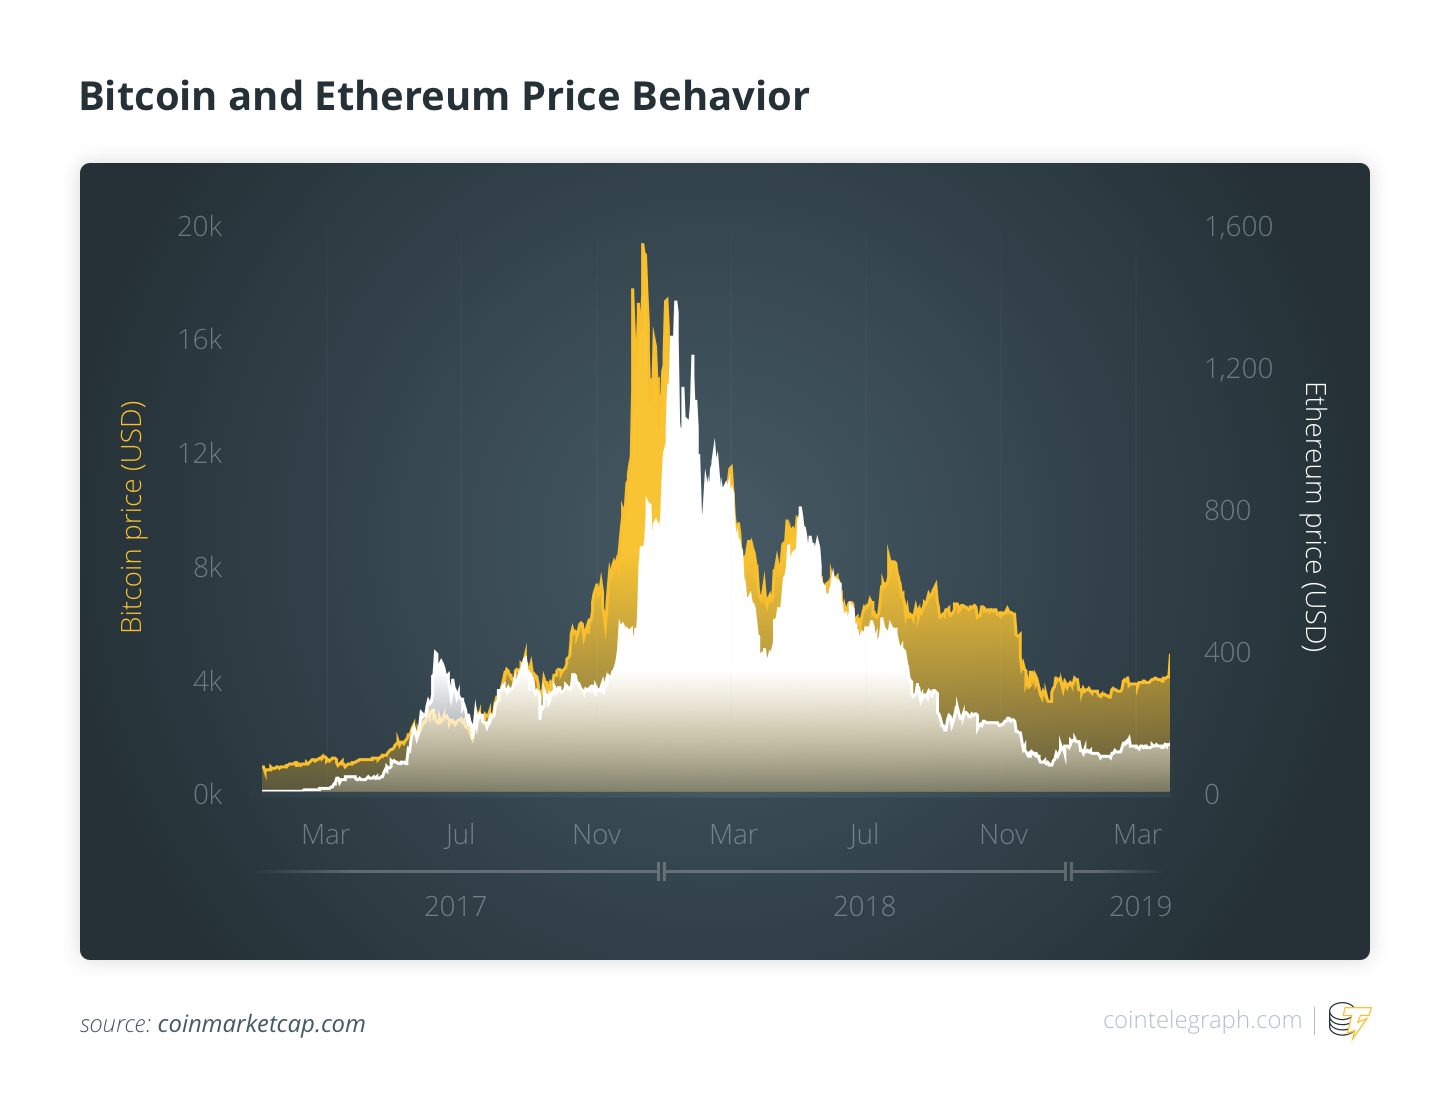 BTC and ETH Price Behavior